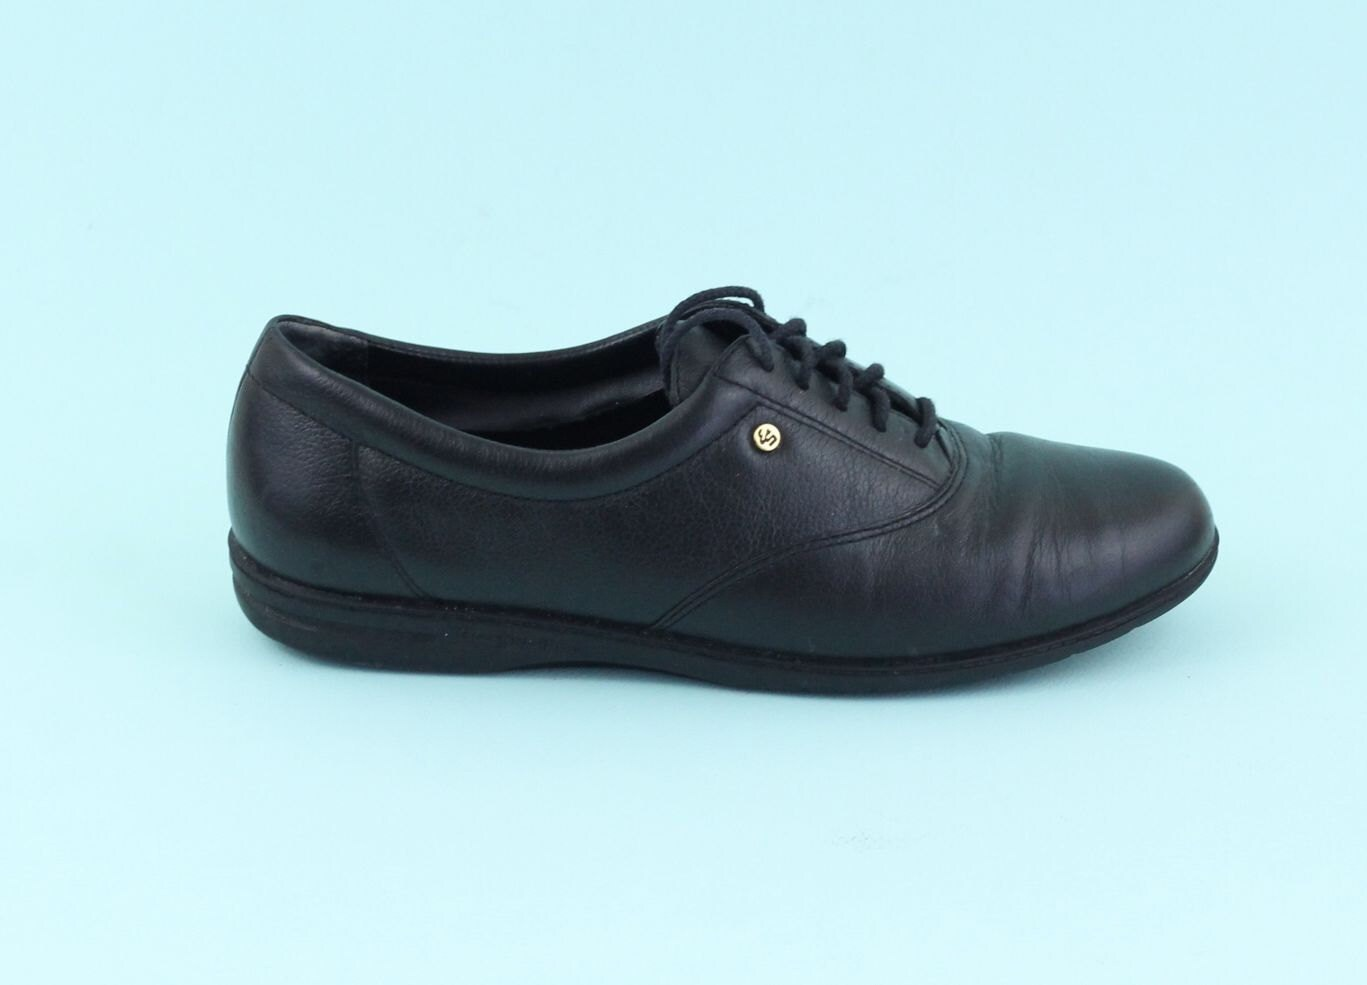 vintage black leather tennis shoes 80s size 6 by